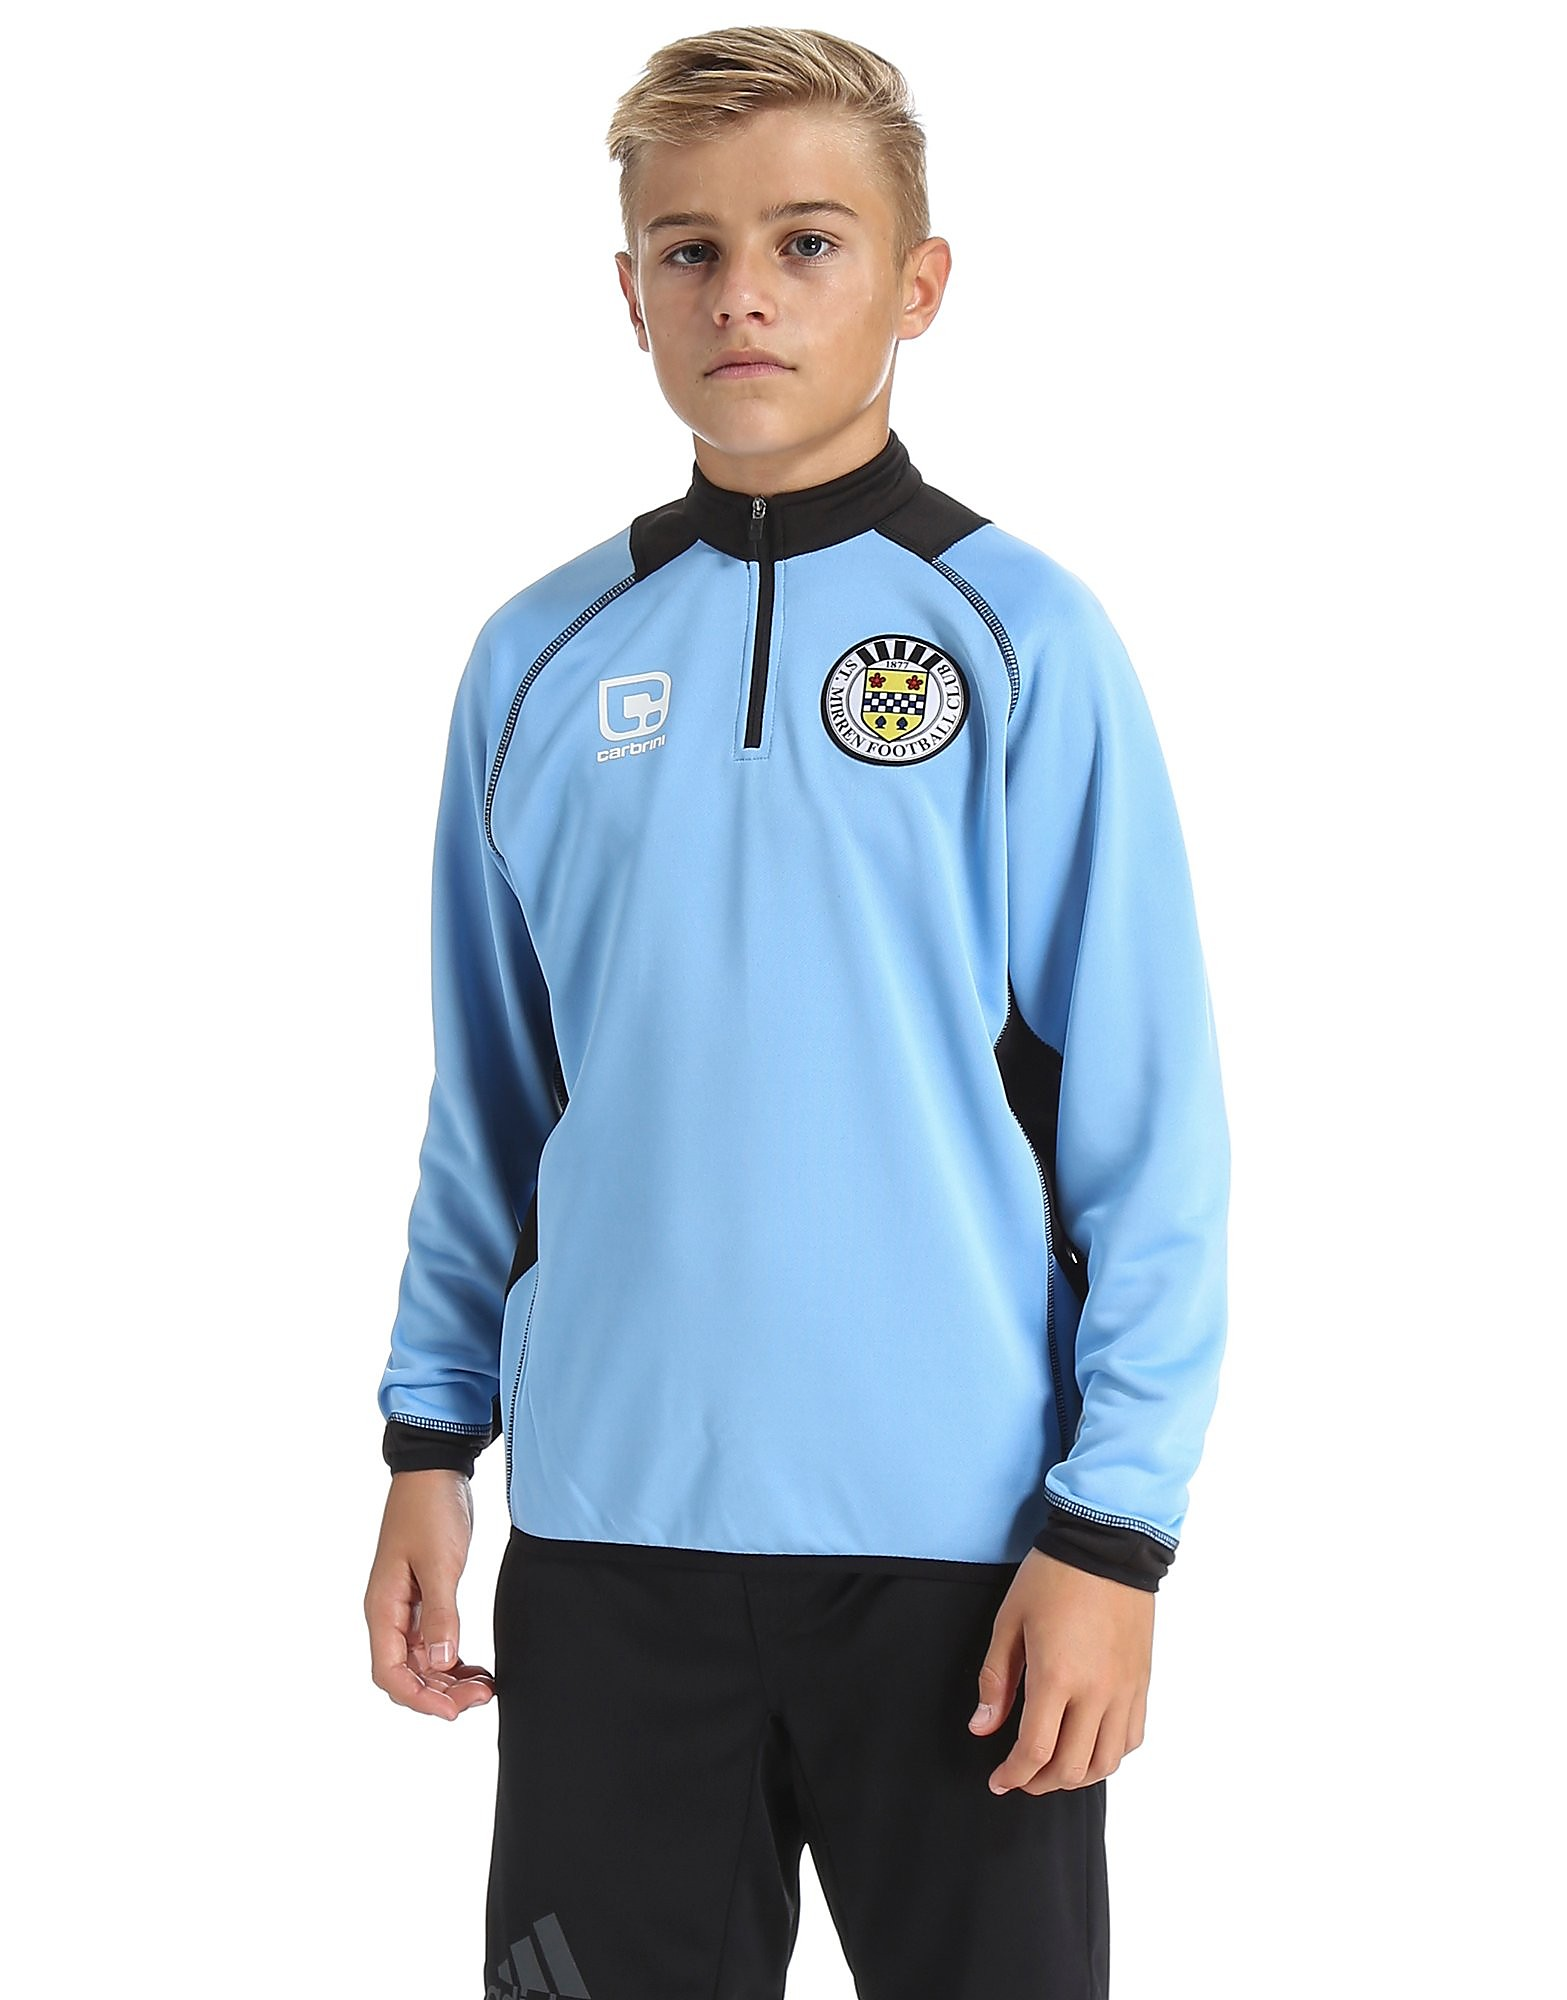 Carbrini St Mirren FC 2016/17 Sweat Top Junior